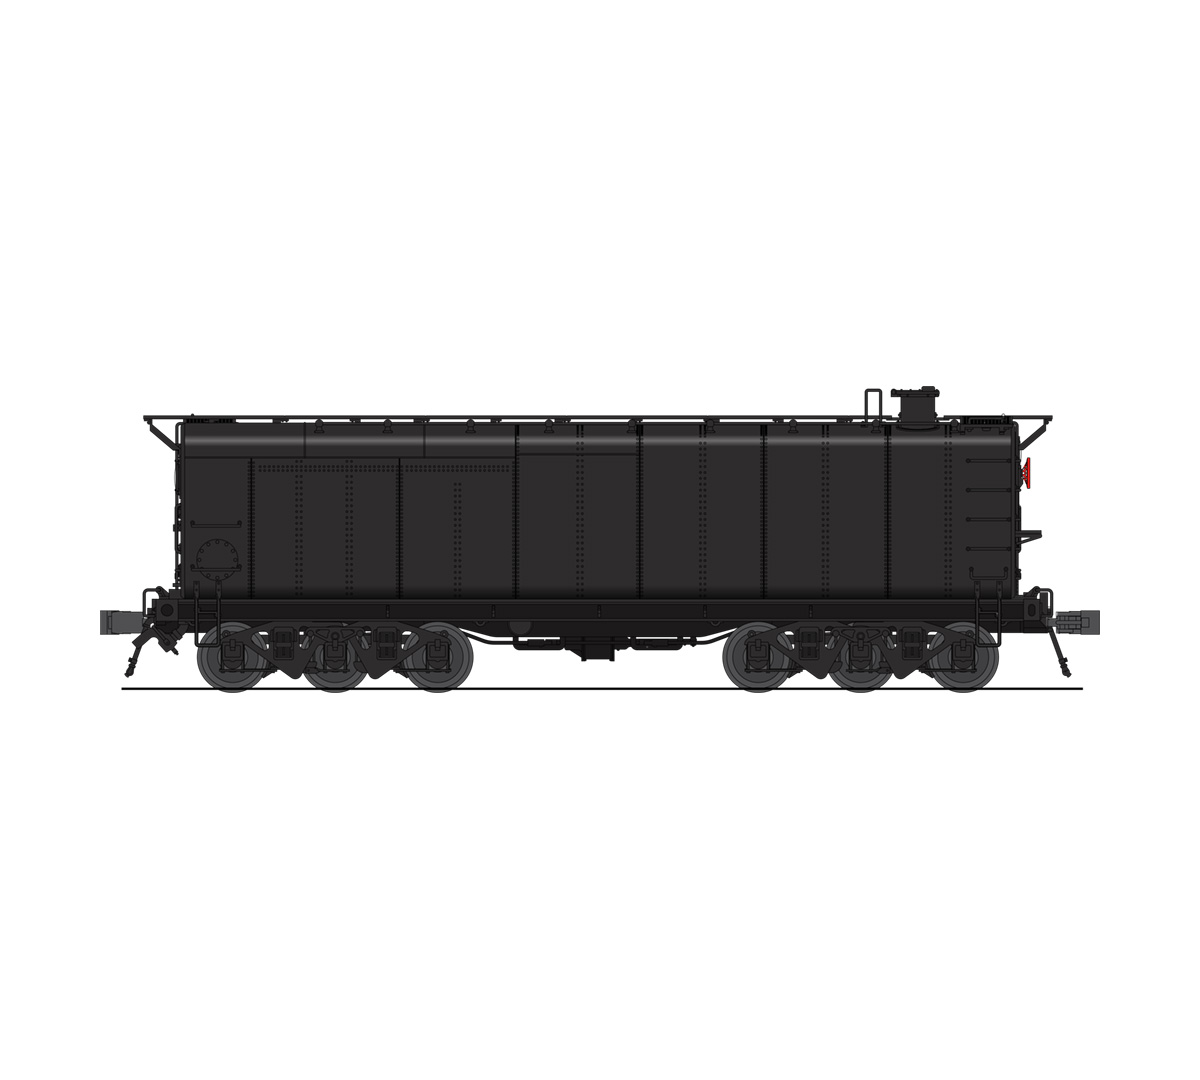 broadway_limited_aux_tender_co_614a